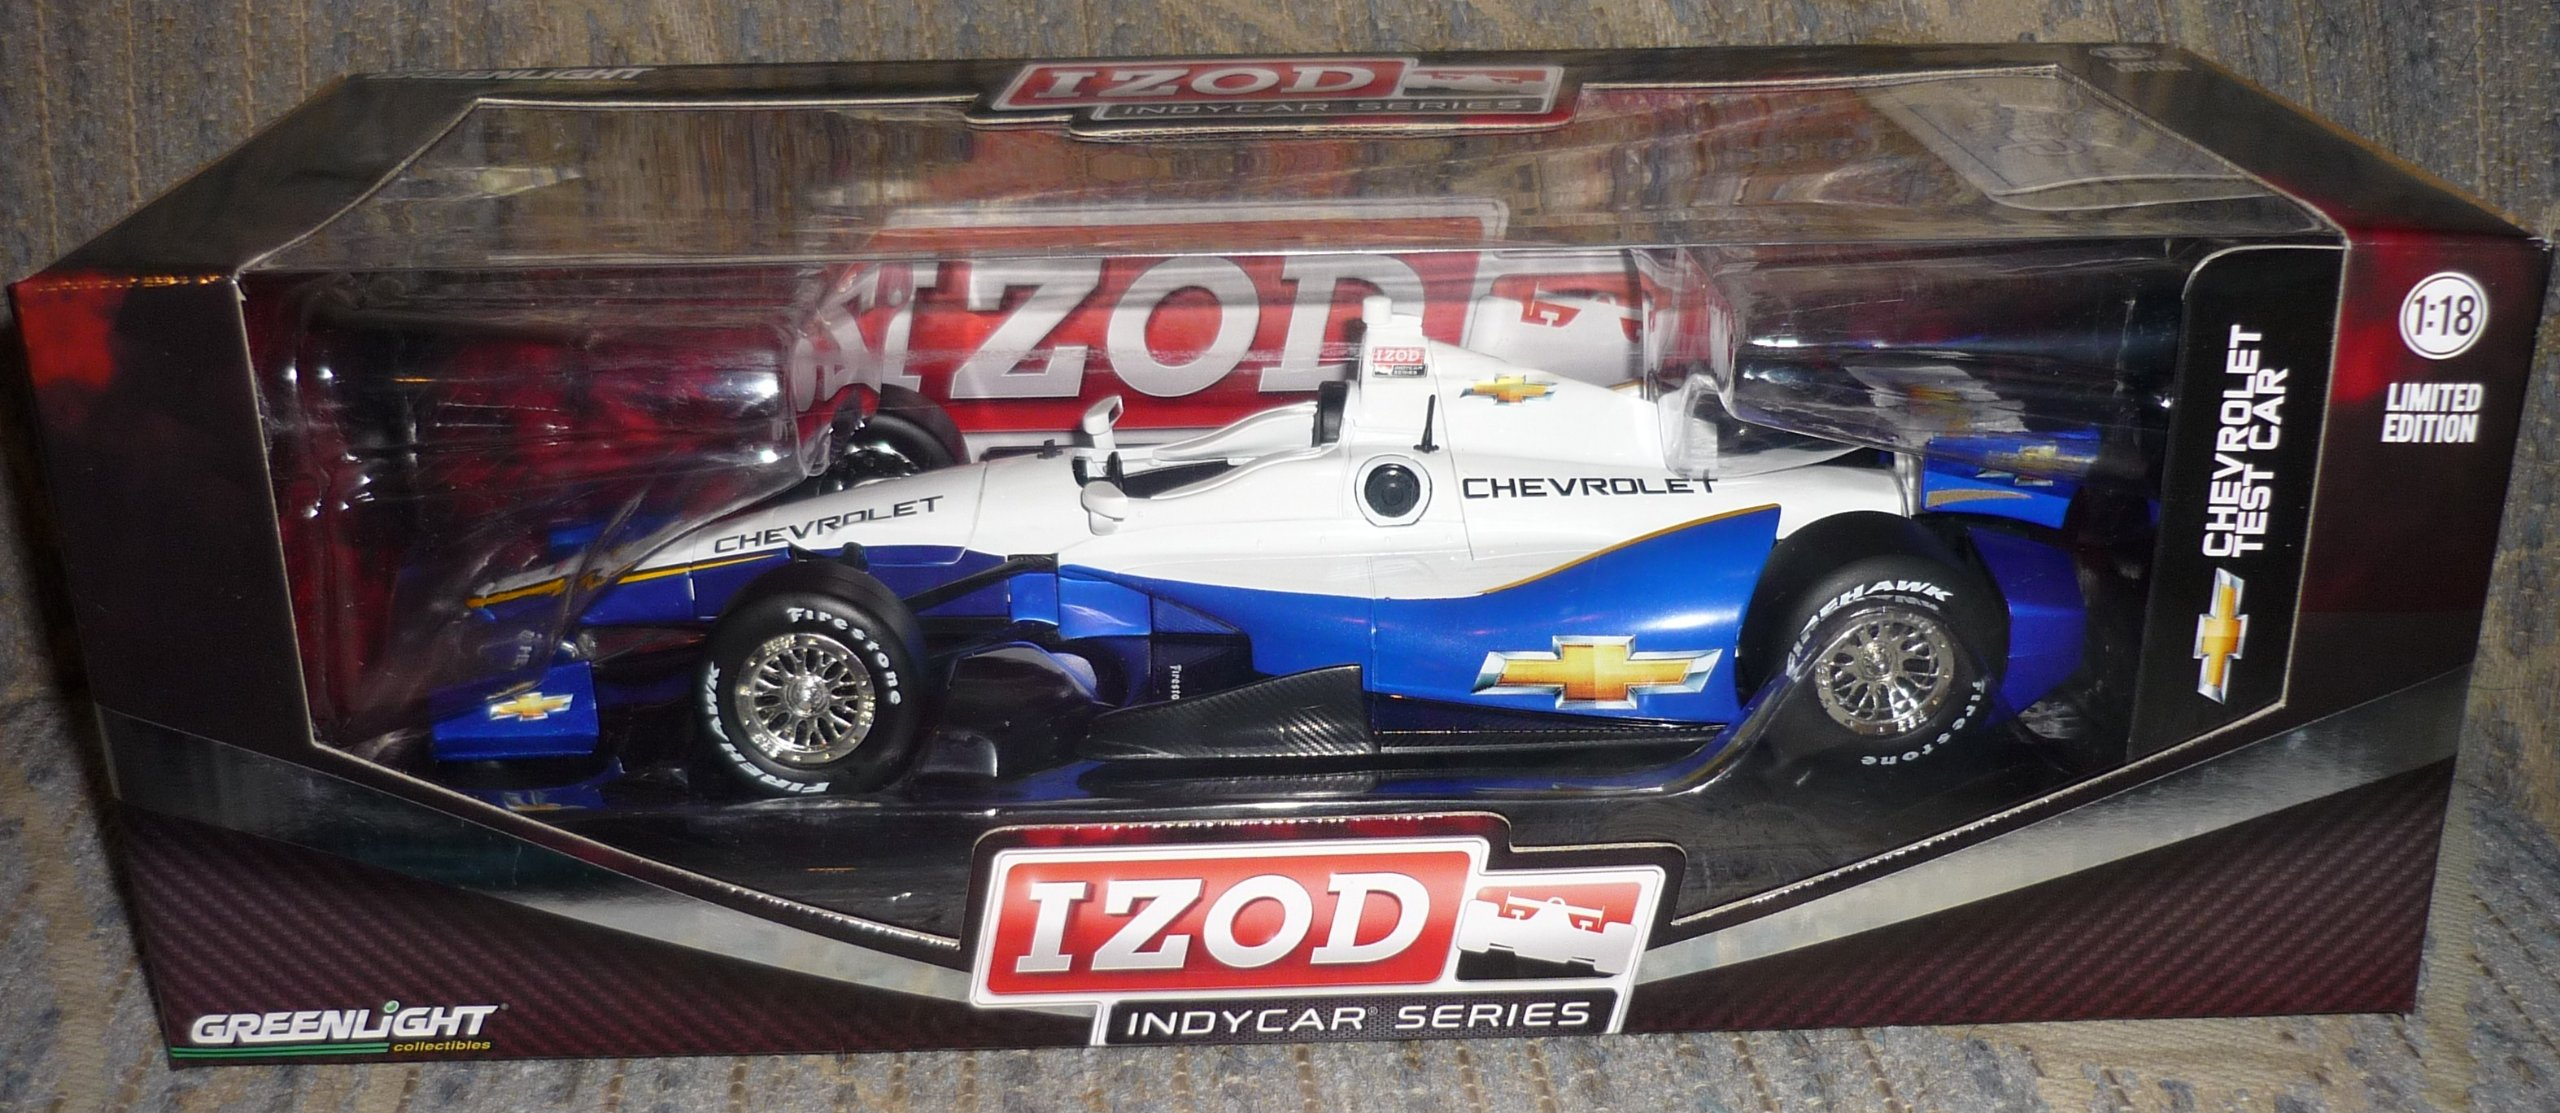 1/18 '12 Indy Car Chevrolet Test by Greenlight 1